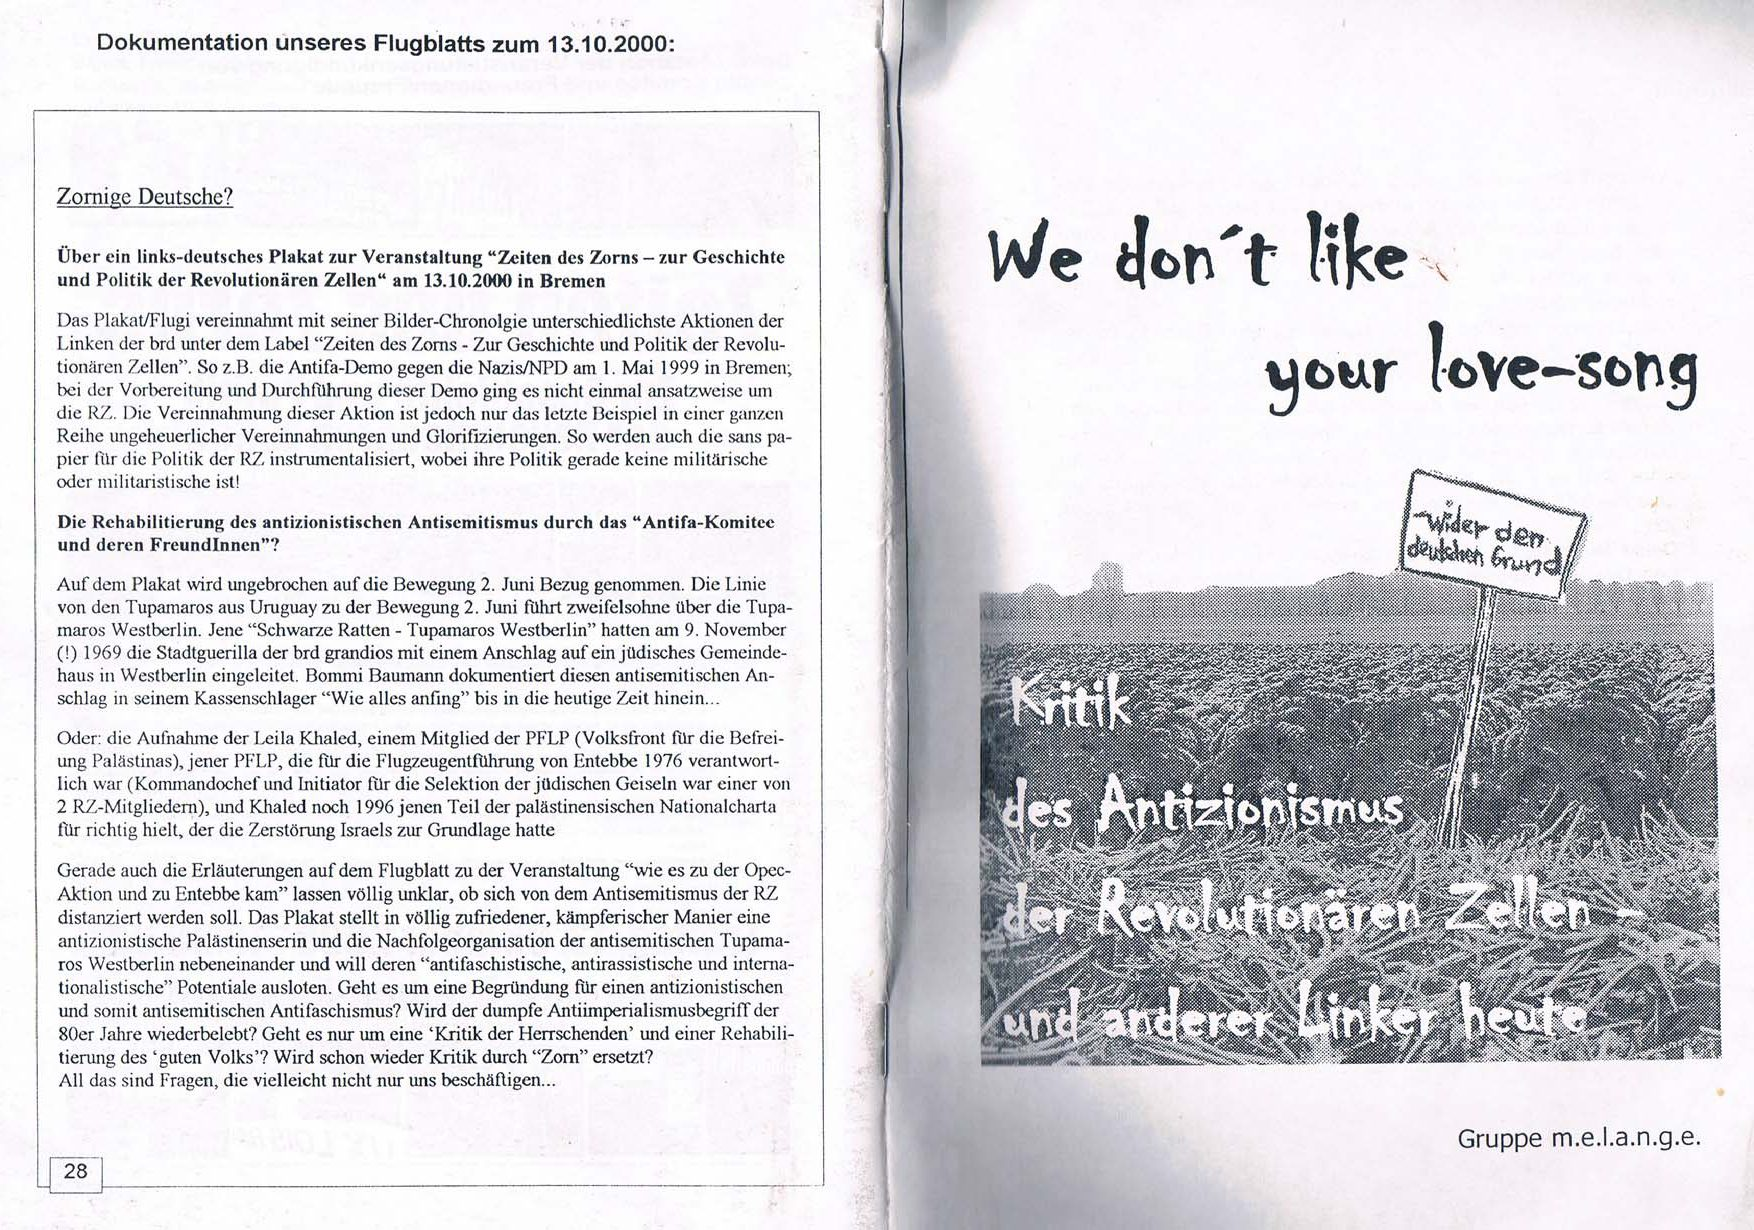 We don't like your love-song. Kritik des Antizionismus der Revolutionären Zellen und anderer Linker heute.